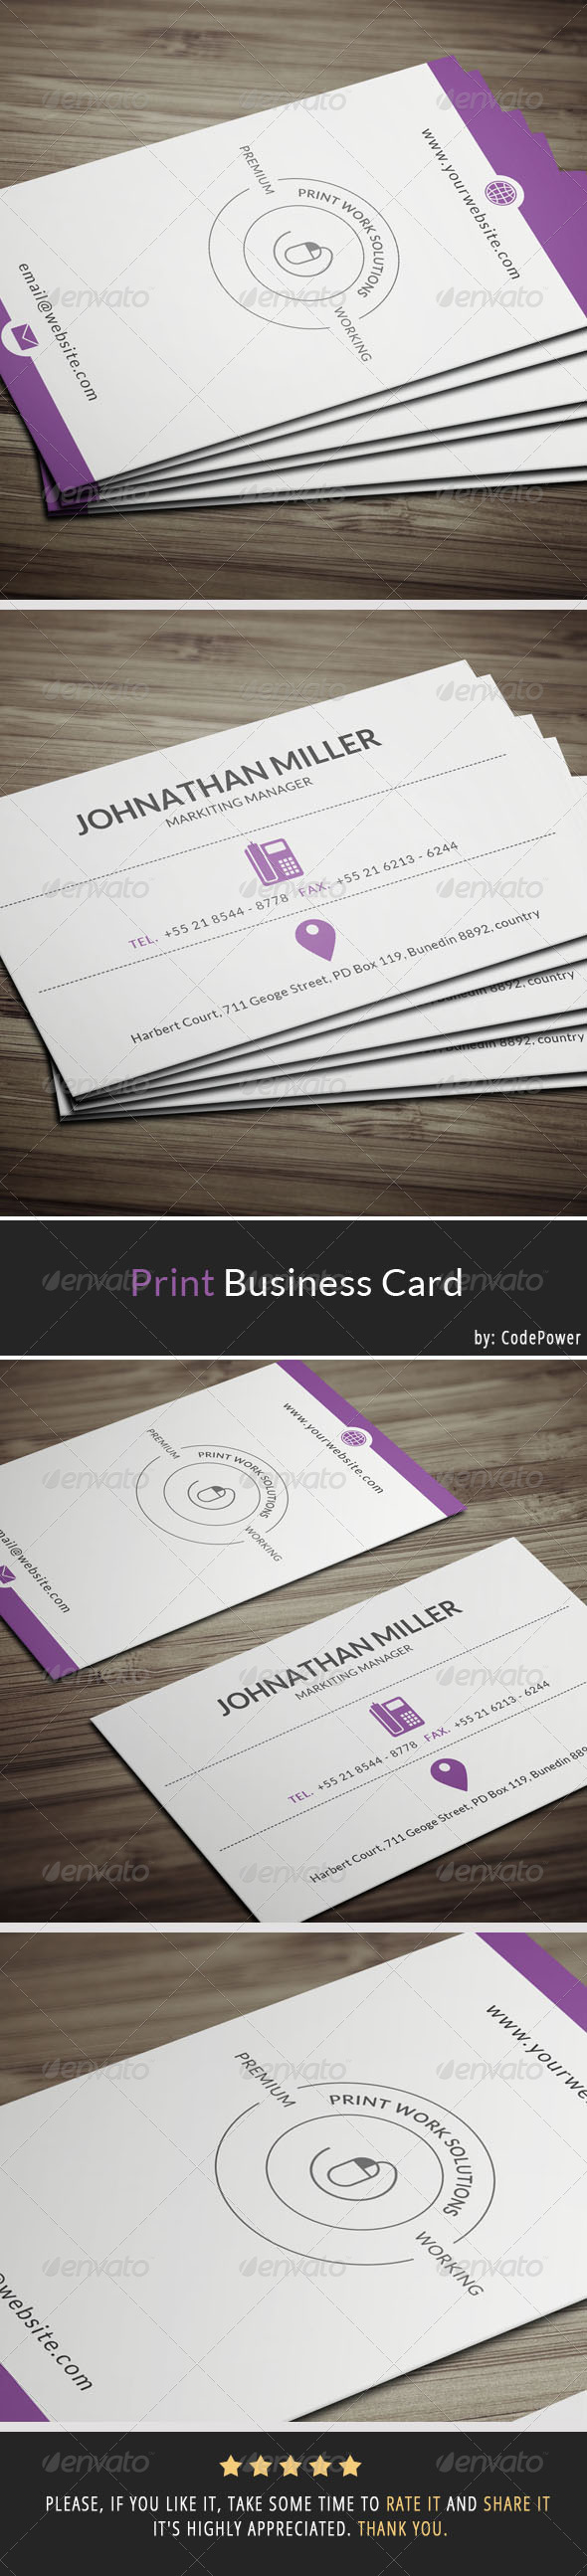 GraphicRiver Print Business Card 7184688